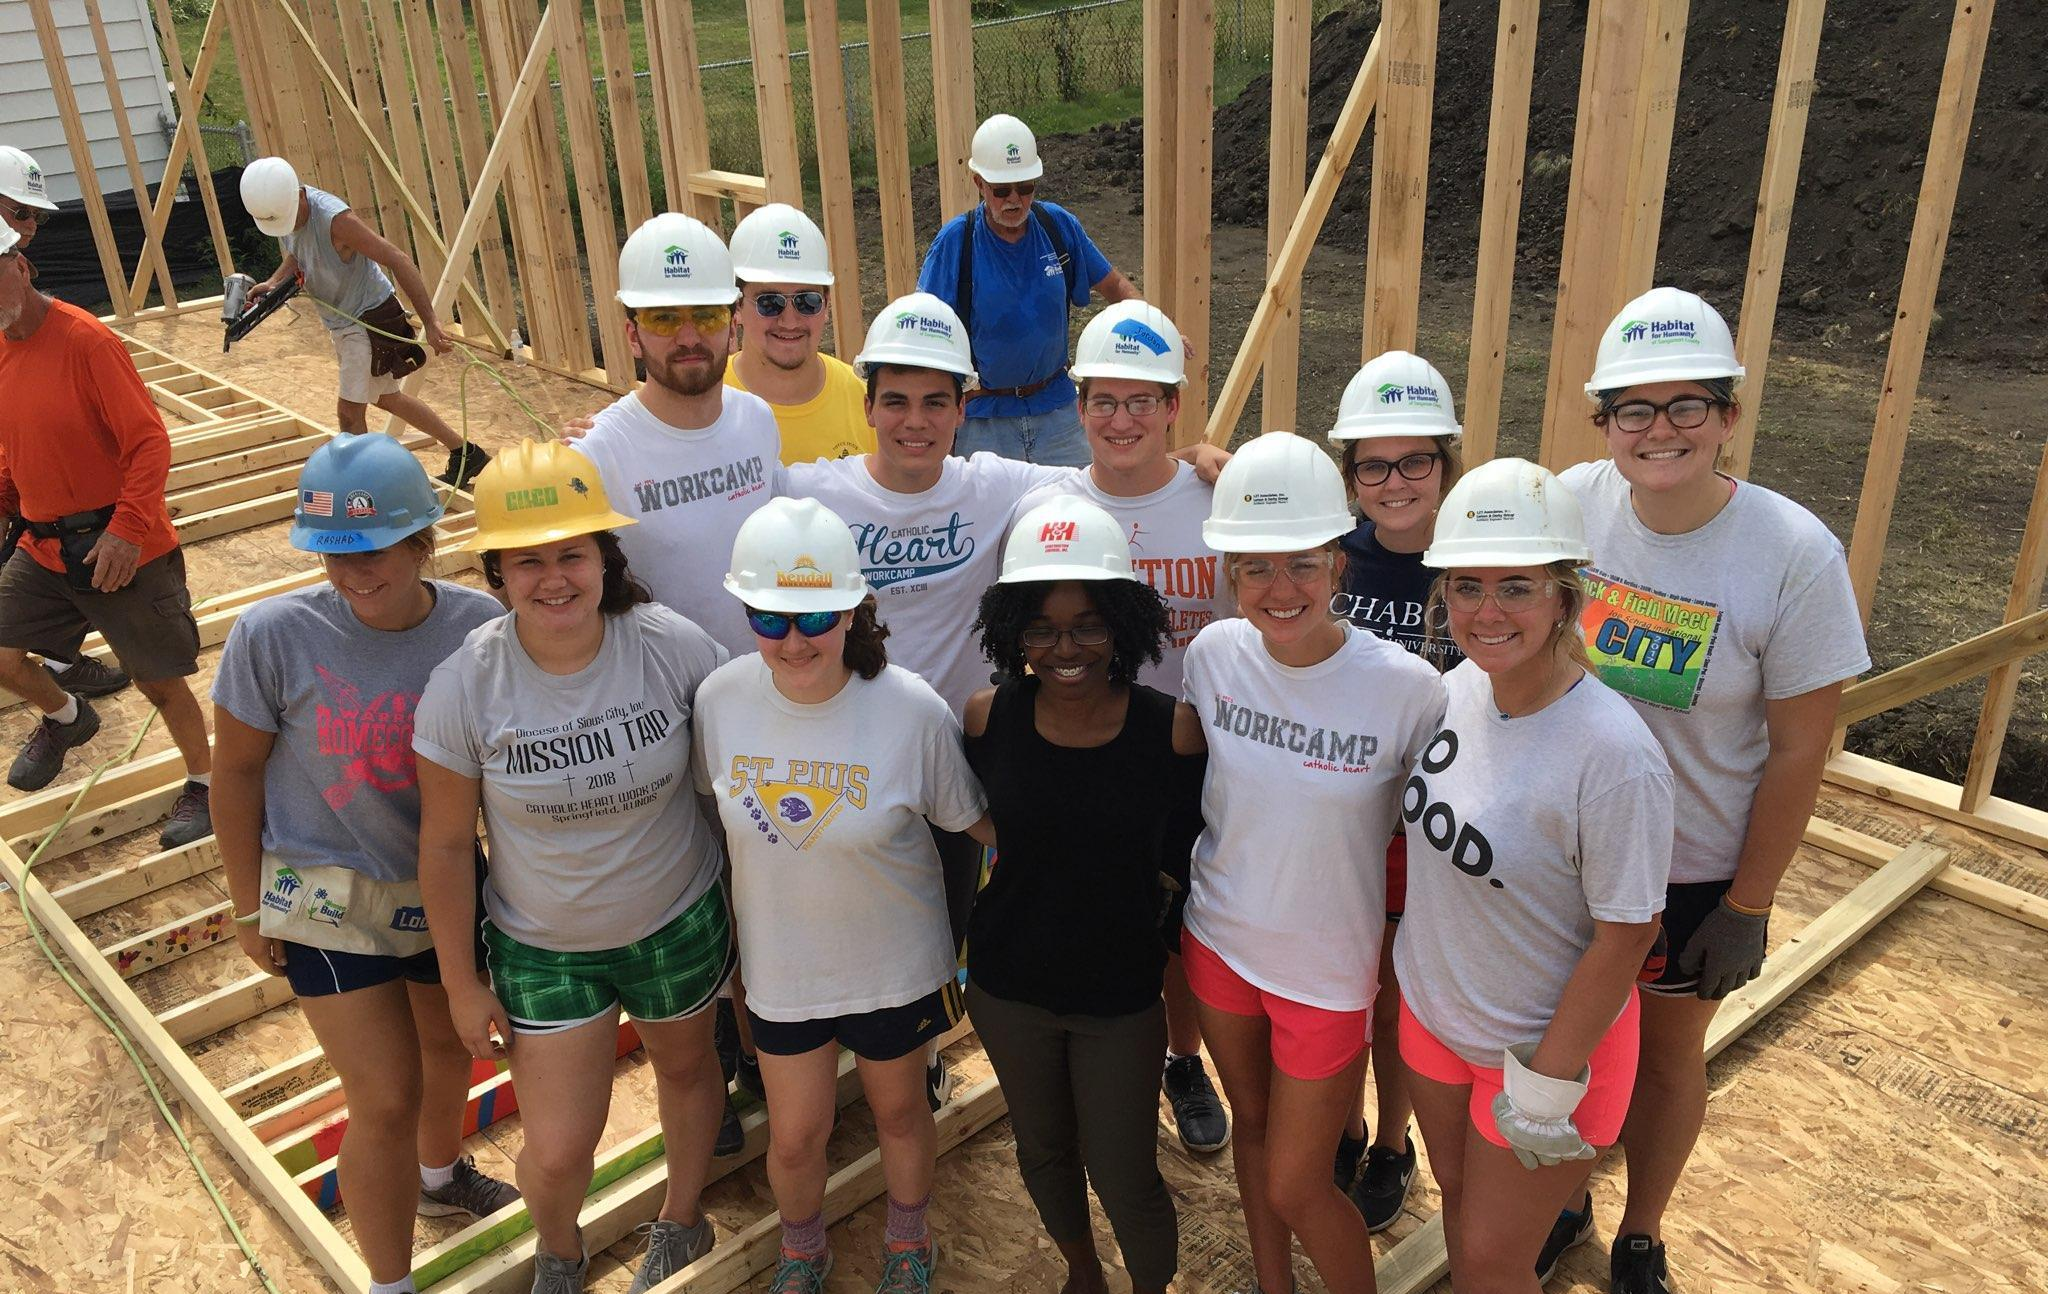 Catholic HEART Workcamp & Disheba Allison